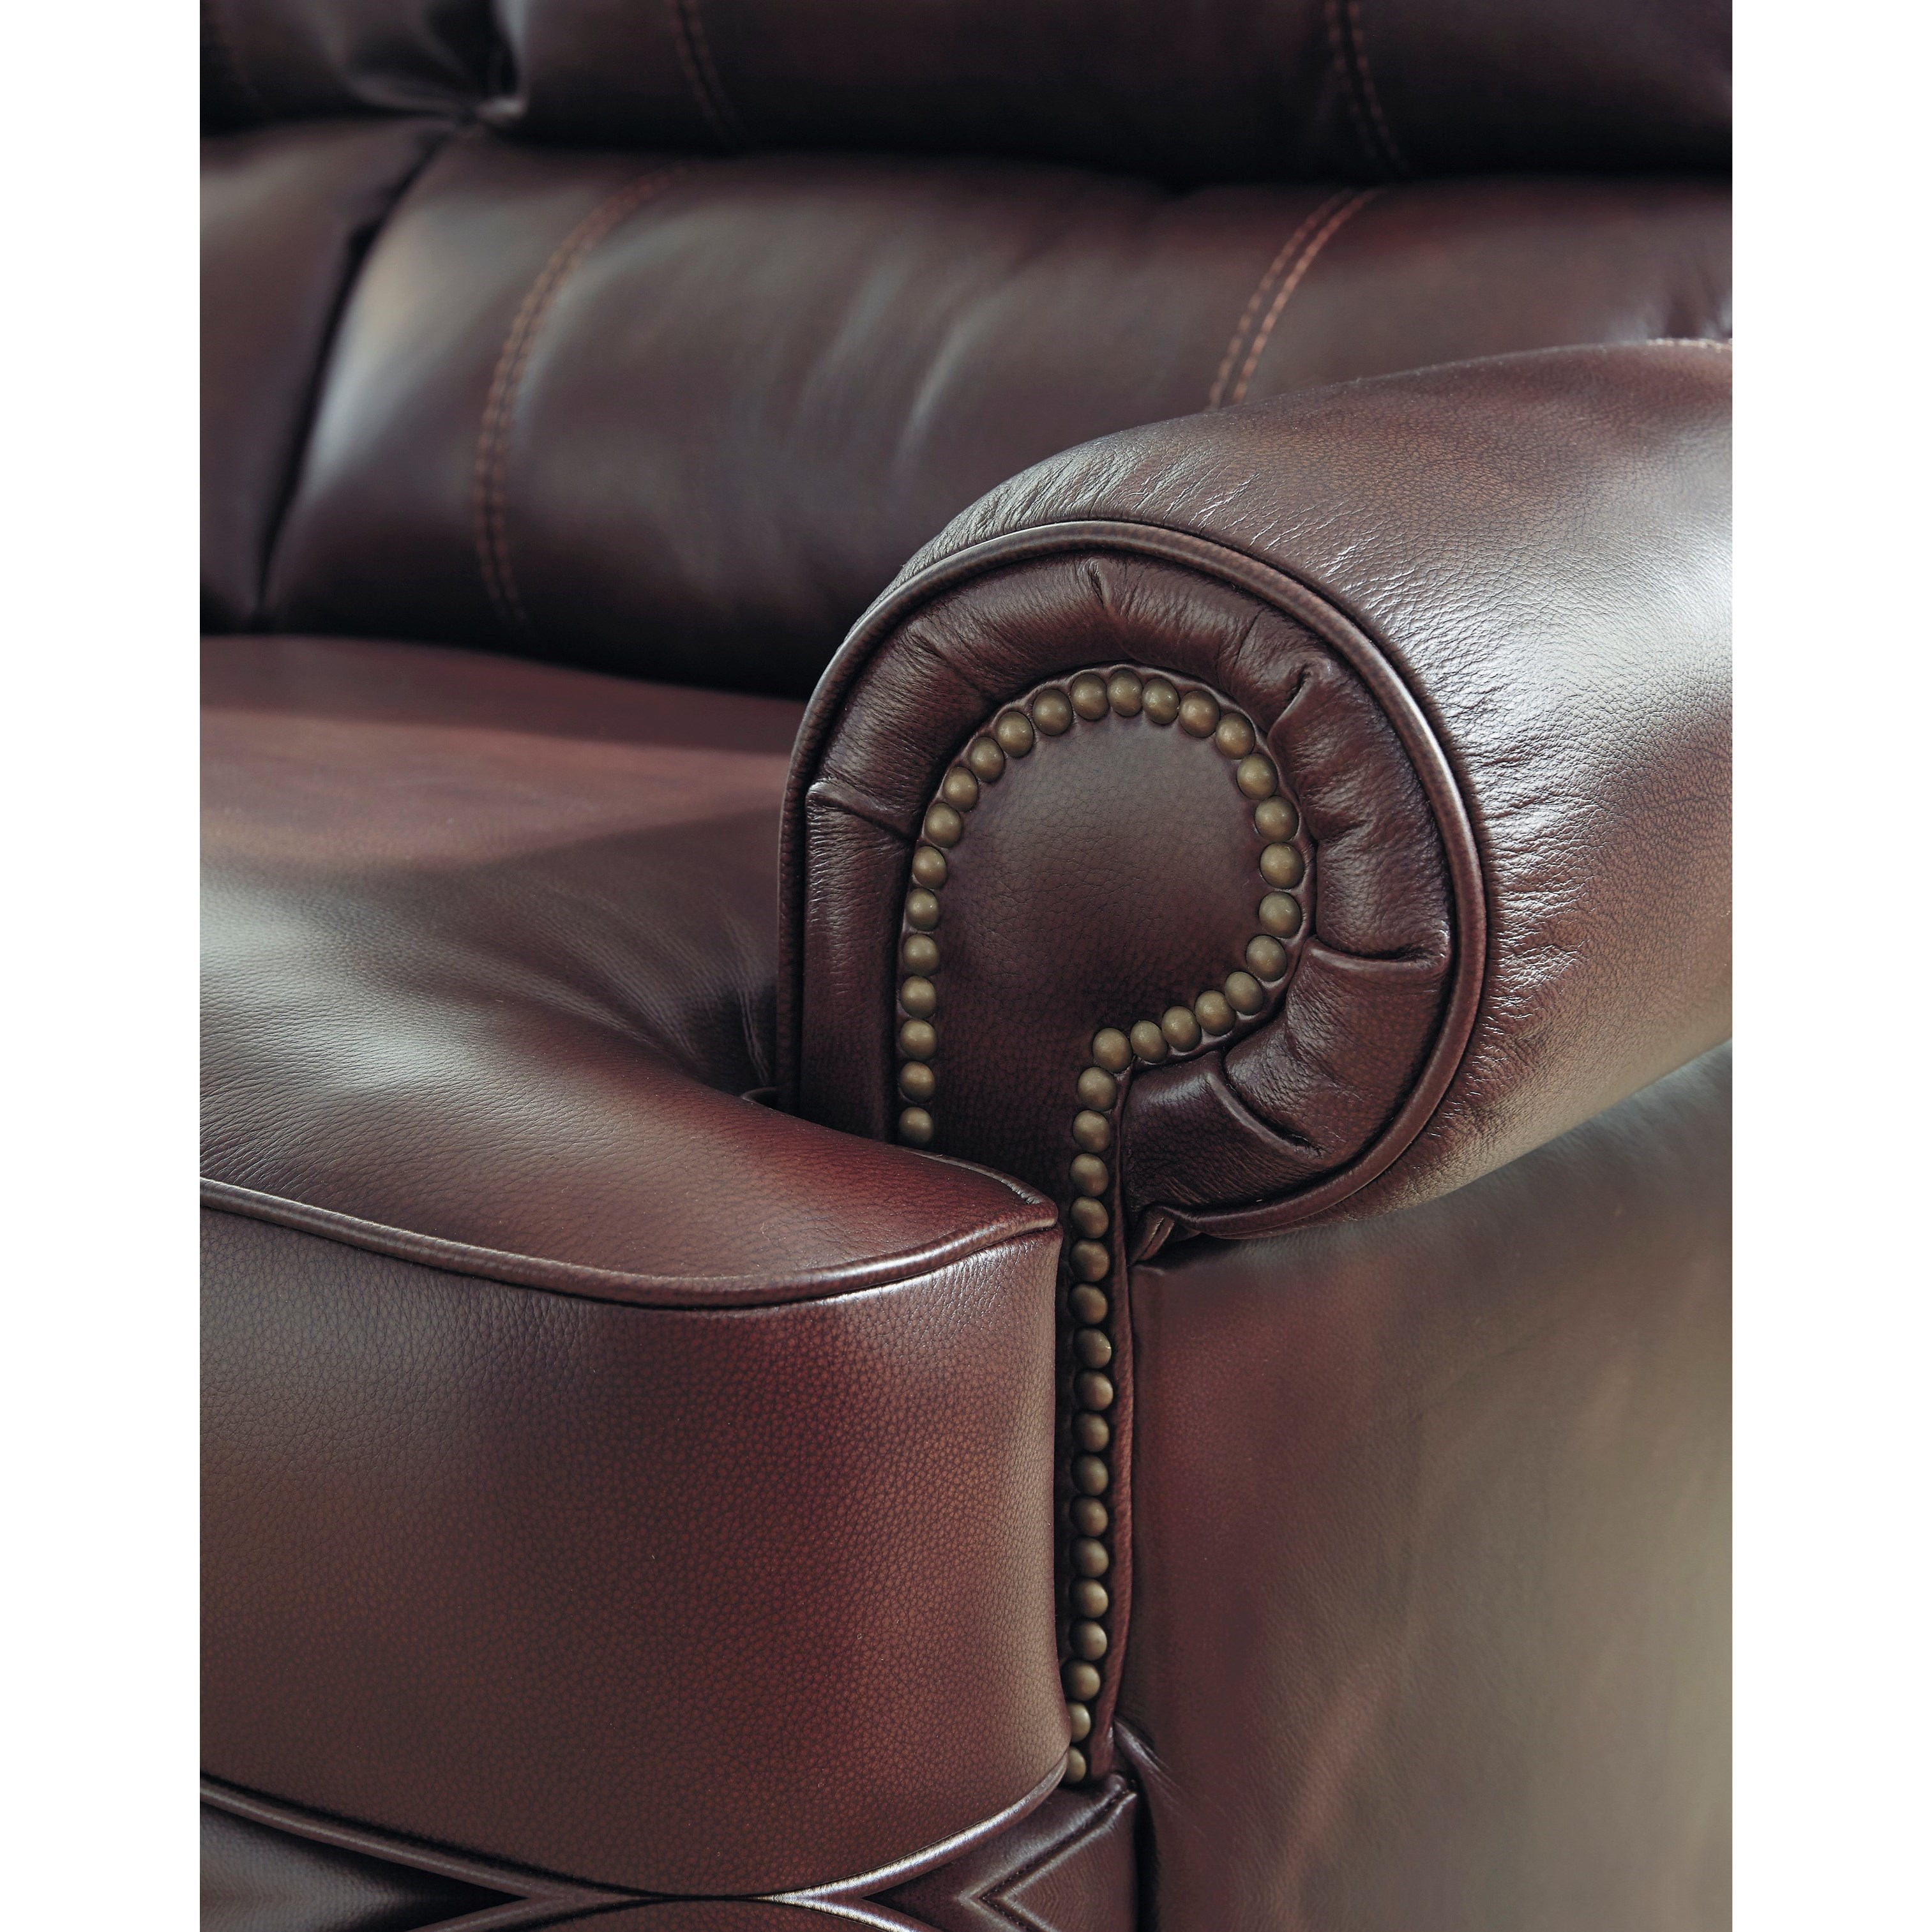 Sofa And Chair Shopping The Quality Is Under The Cover Coil Spring